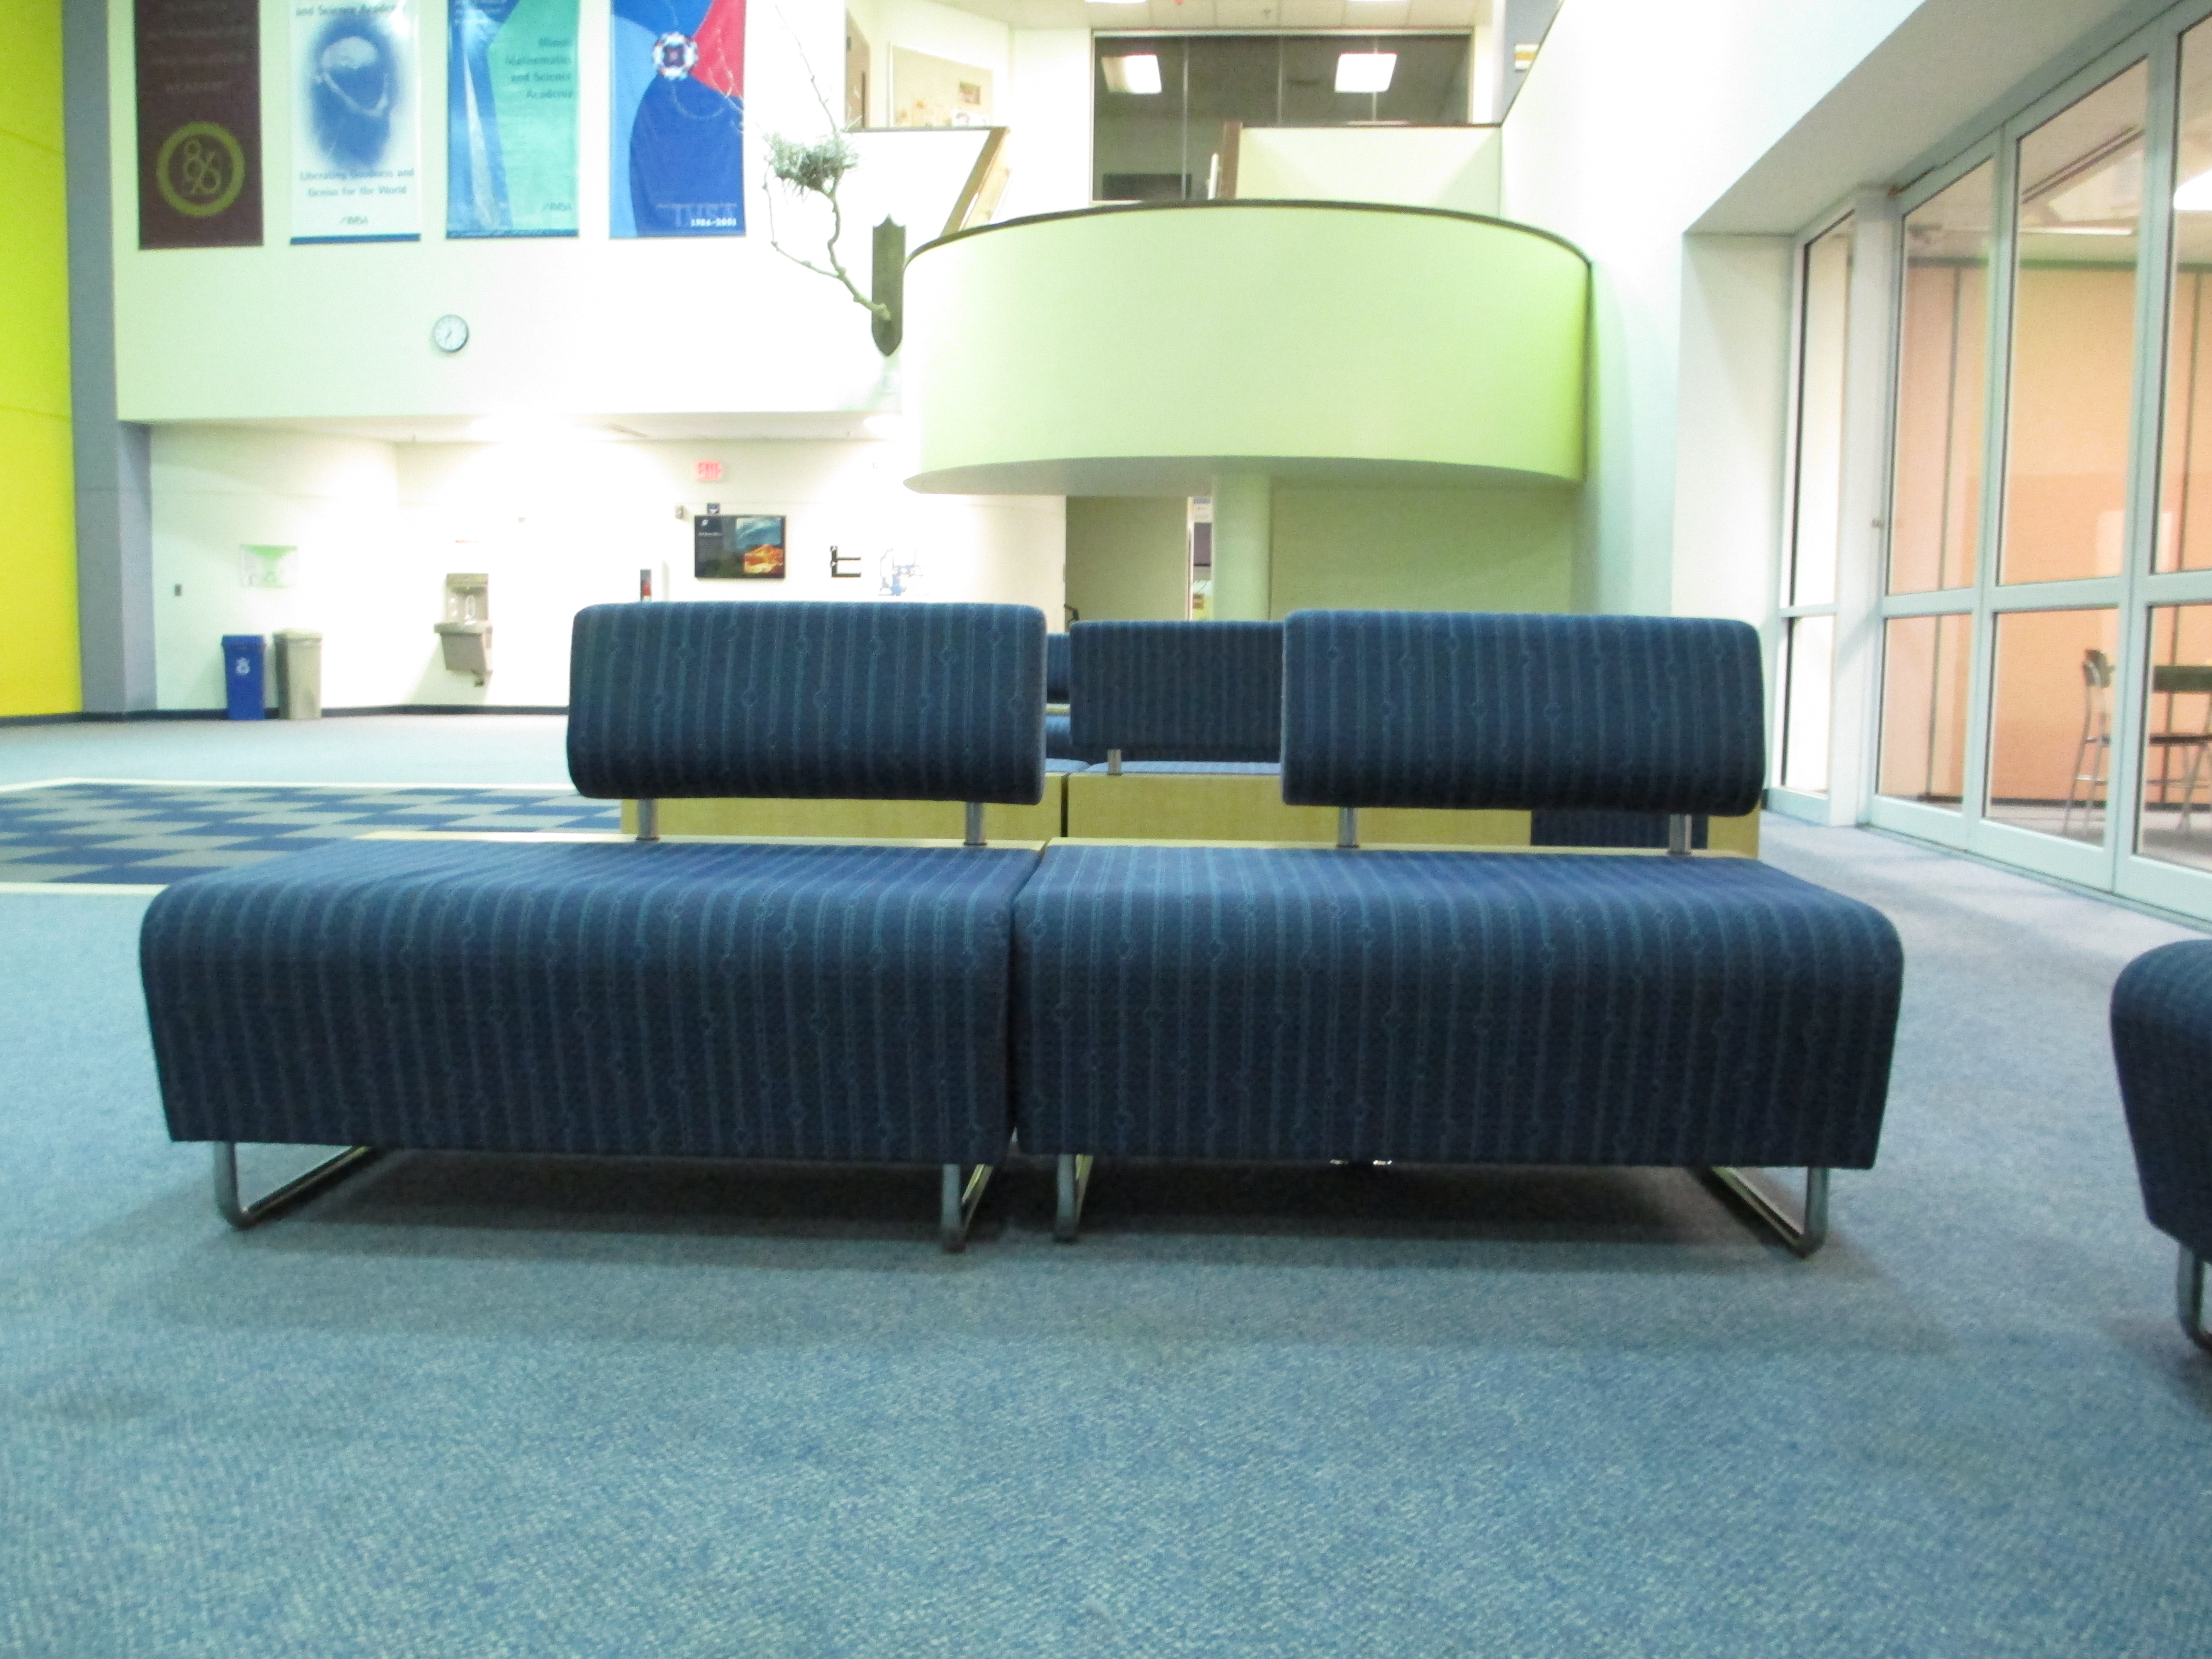 The new couches in their natural environment.